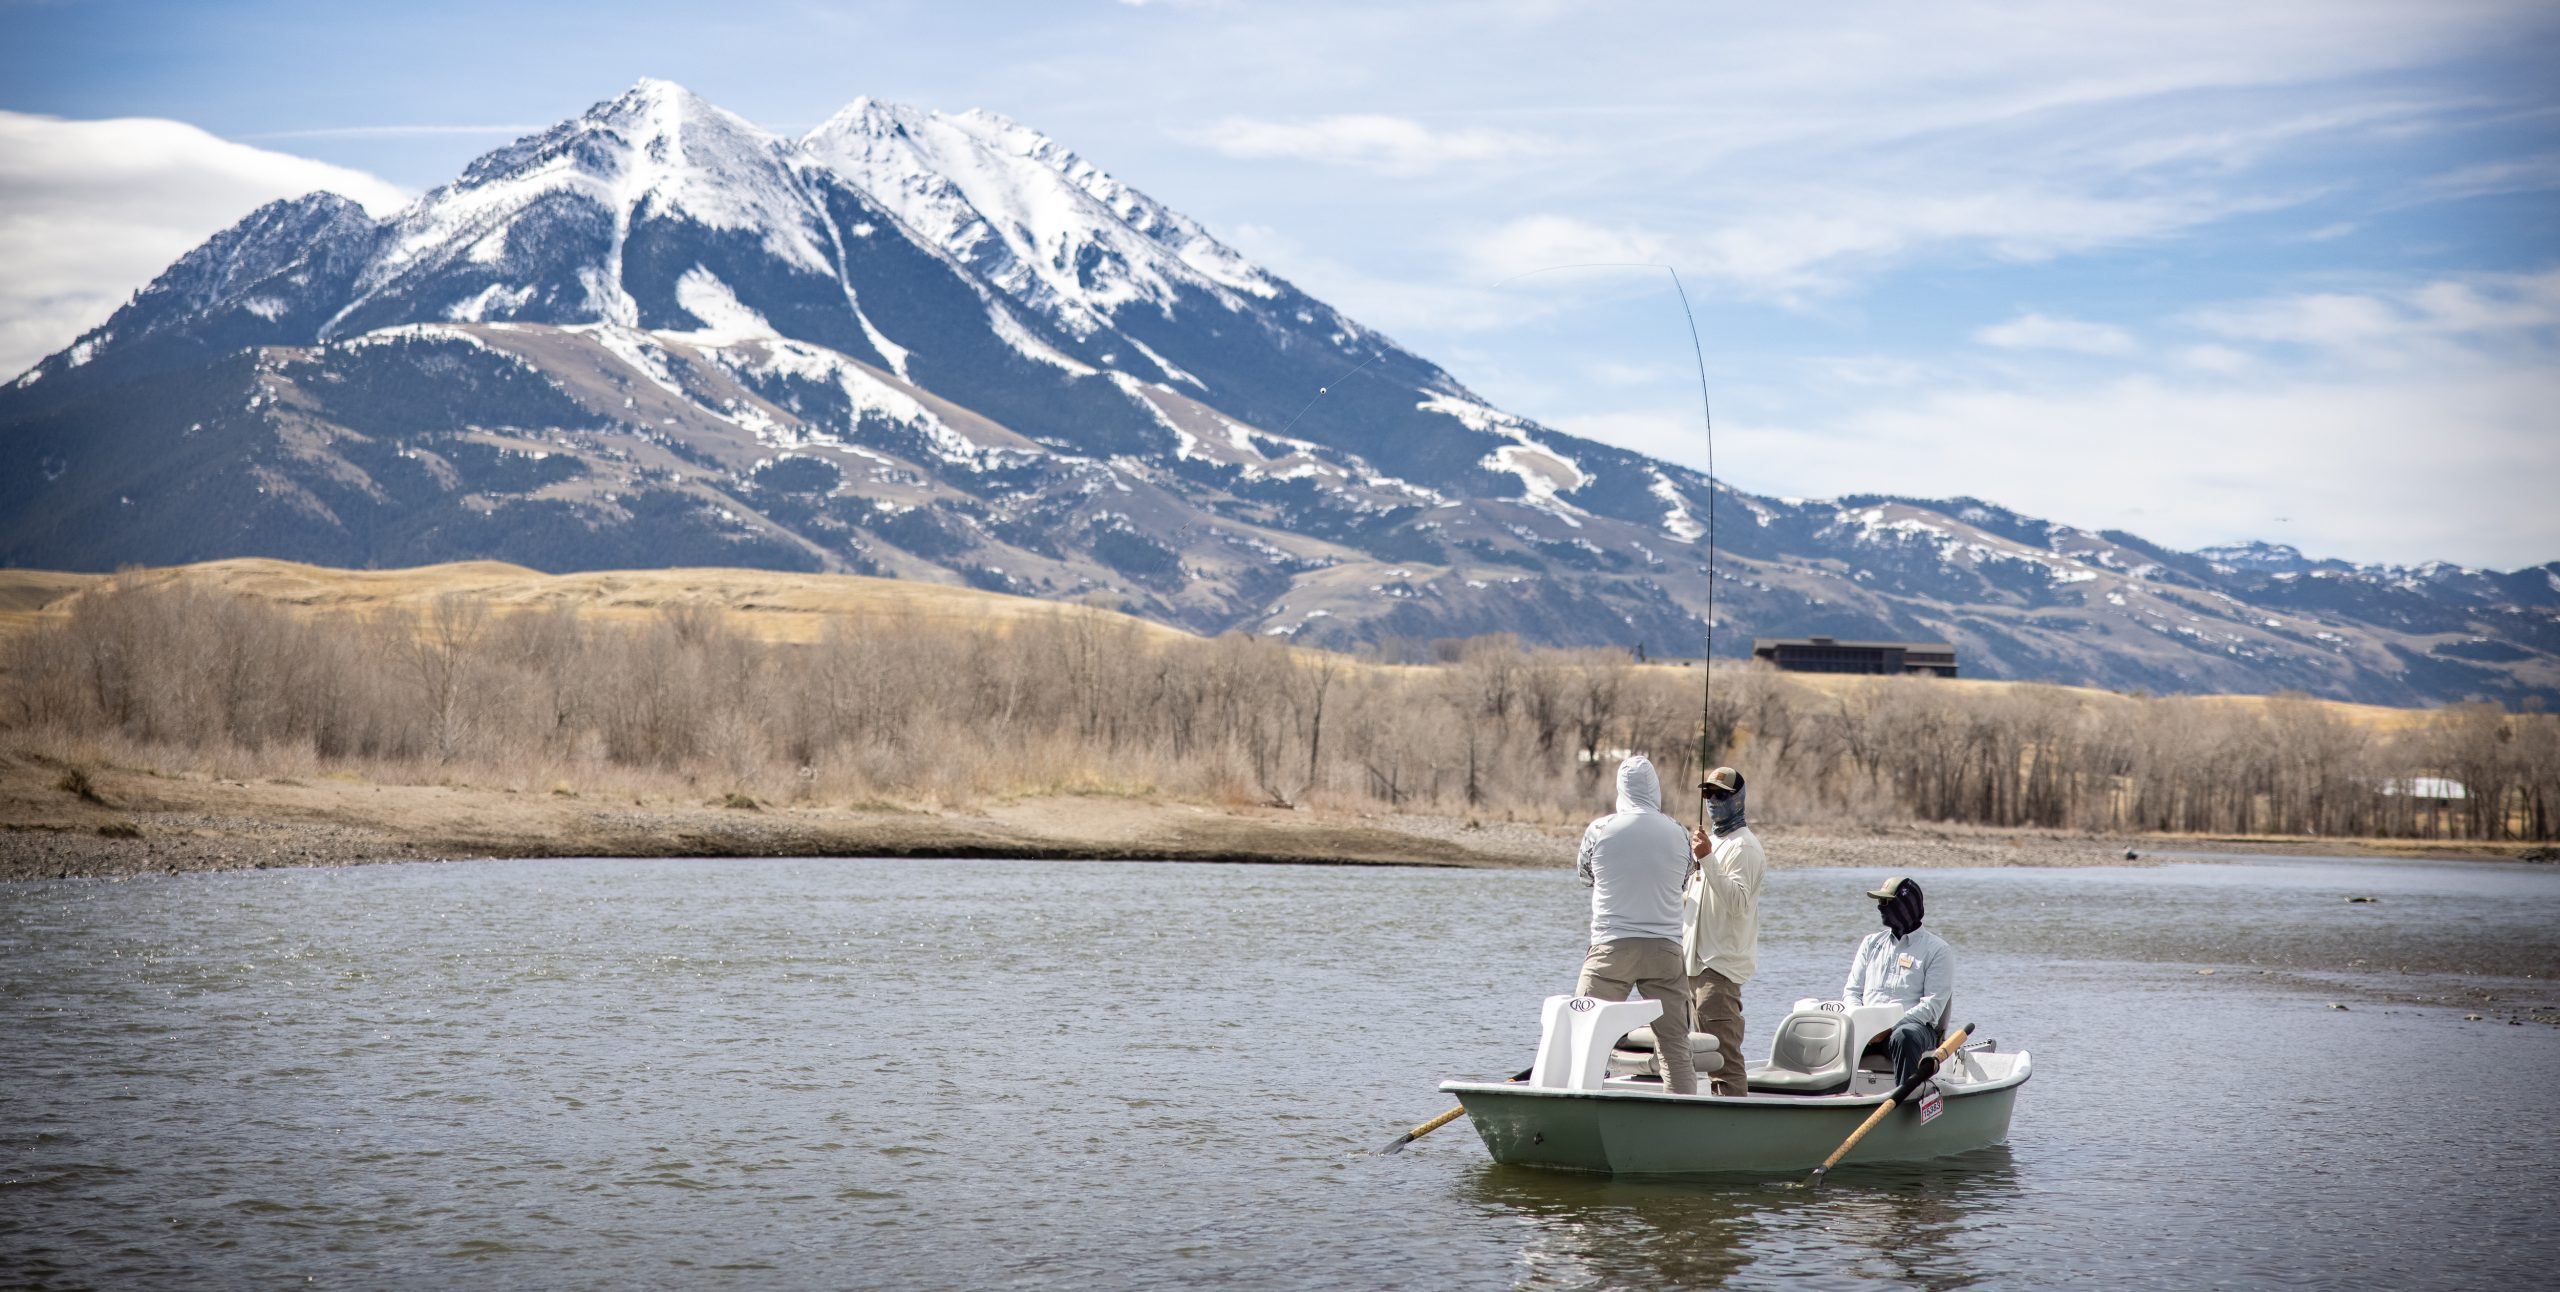 Watch a Veteran Fishing Experience on the Yellowstone River